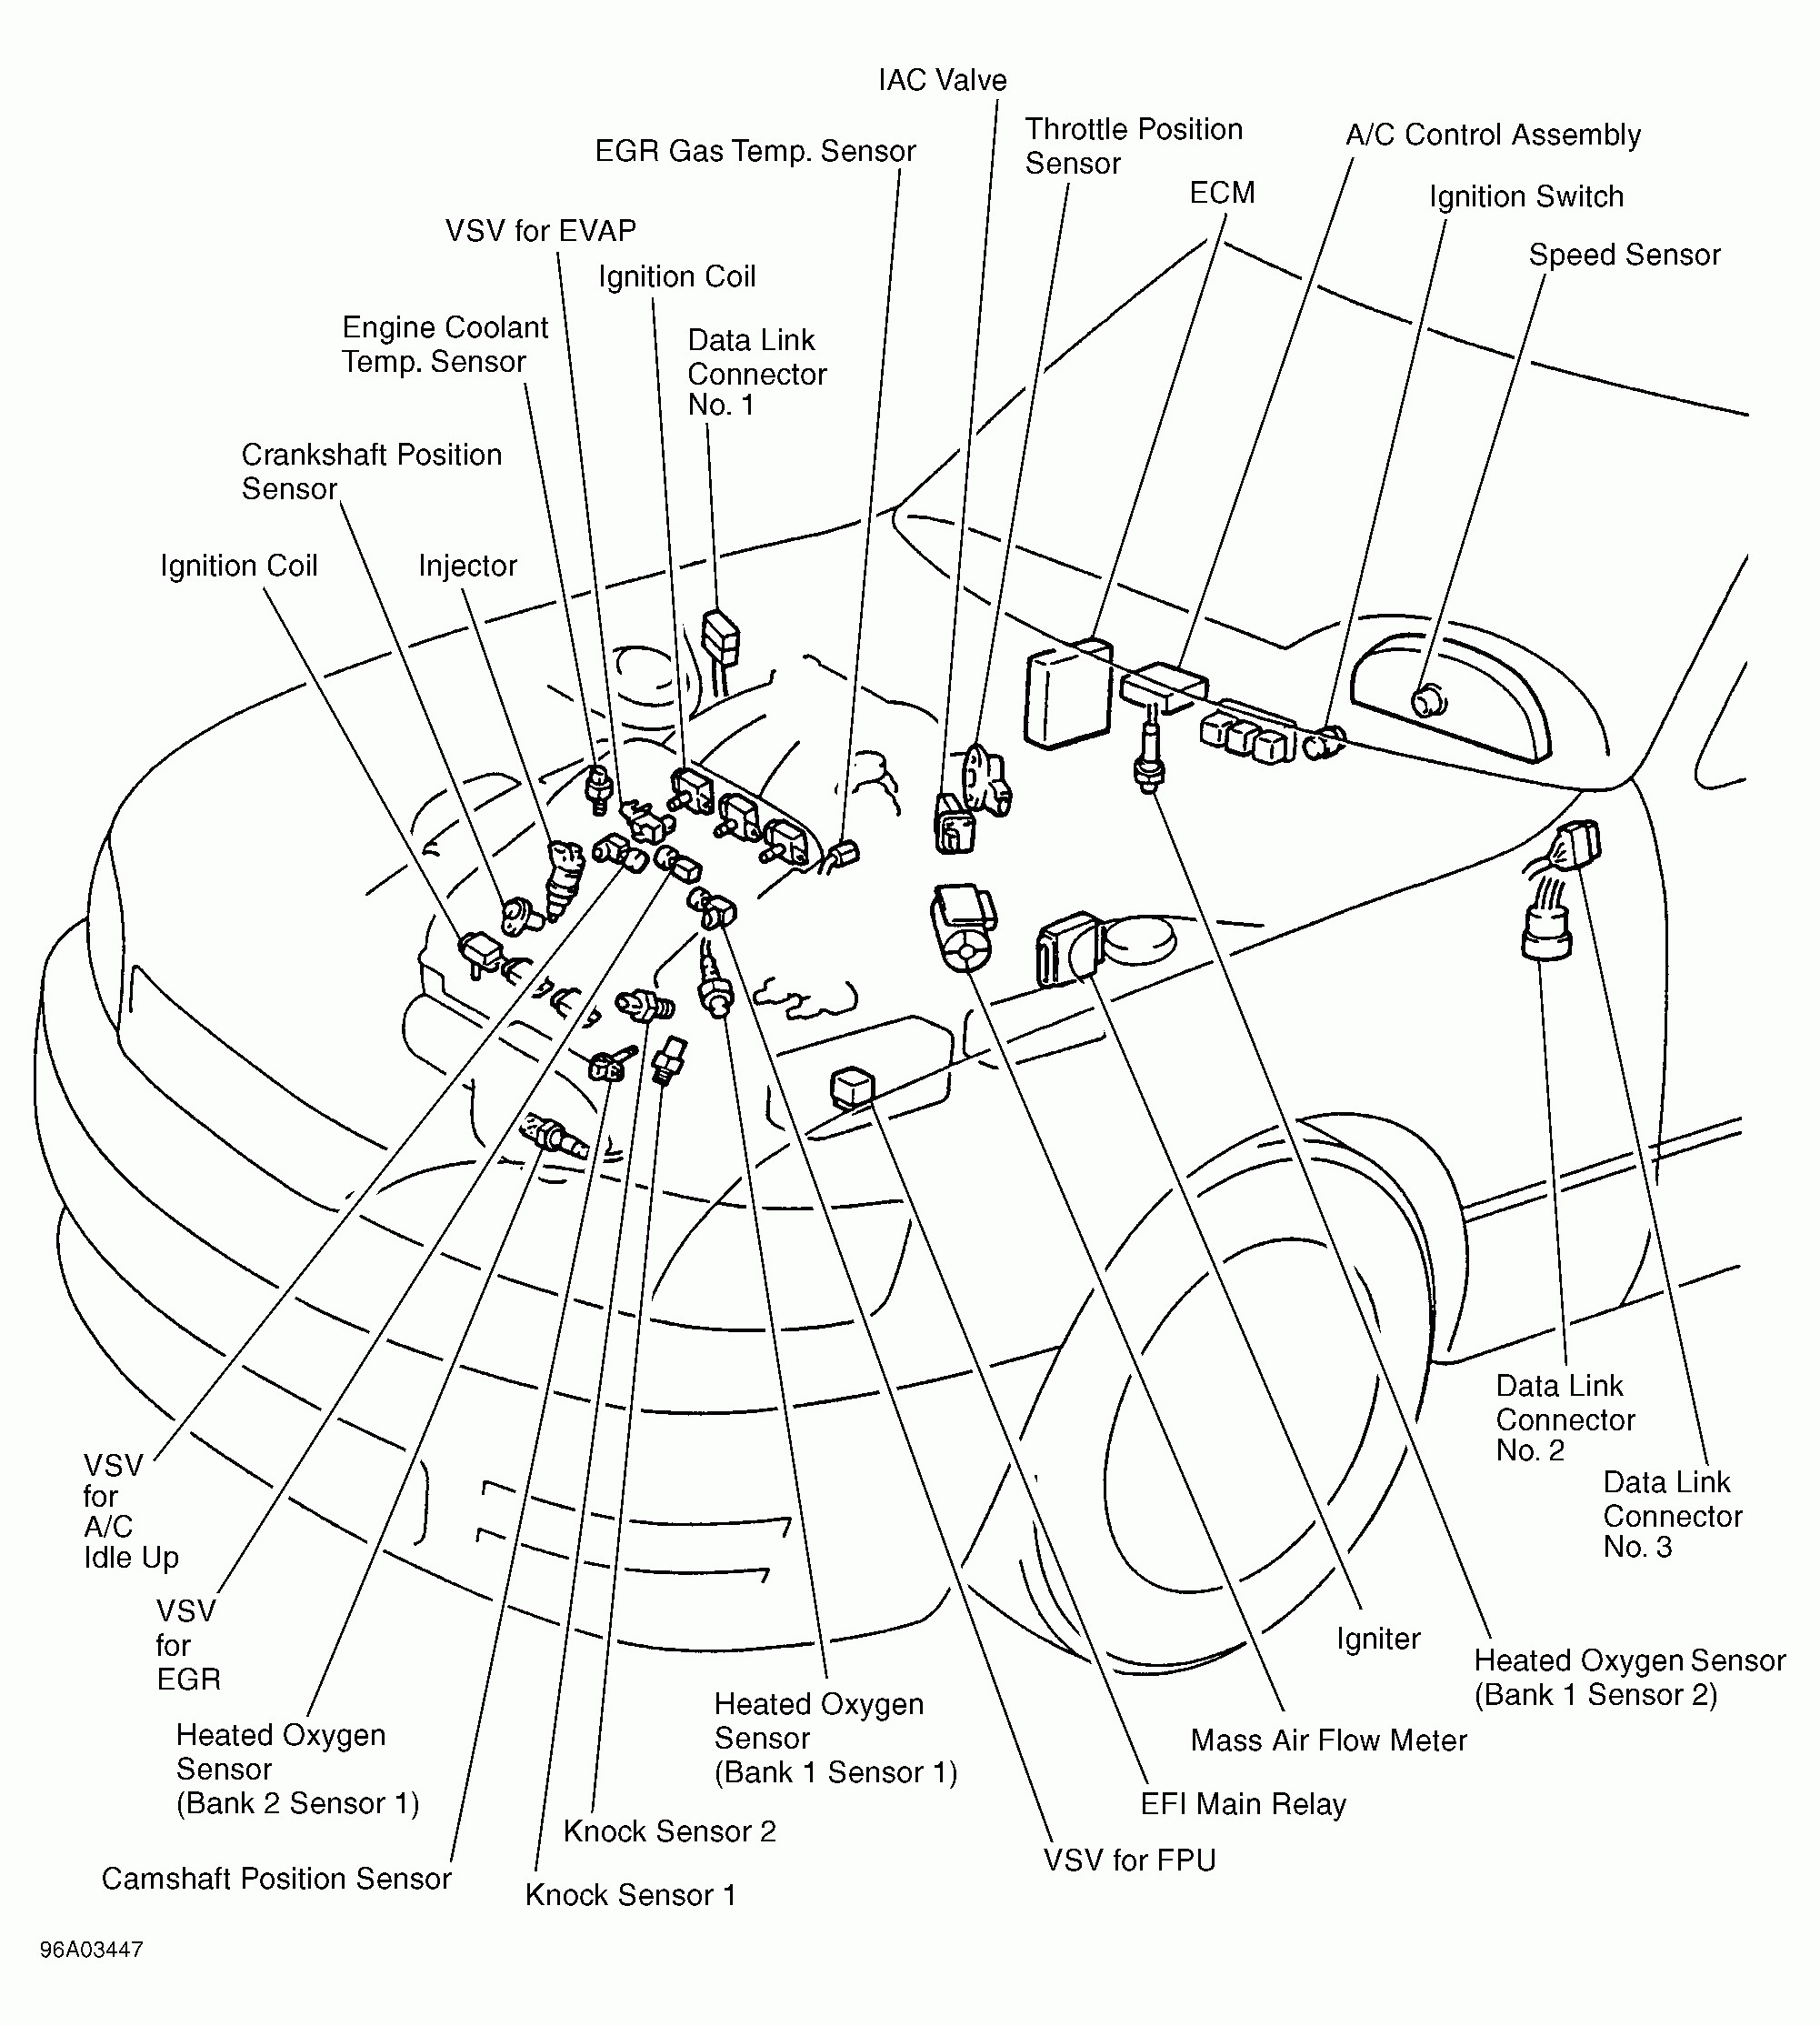 Gm 3800 Engine Diagram Vector Diagram Engine Vector Wiring Diagrams Instructions Of Gm 3800 Engine Diagram